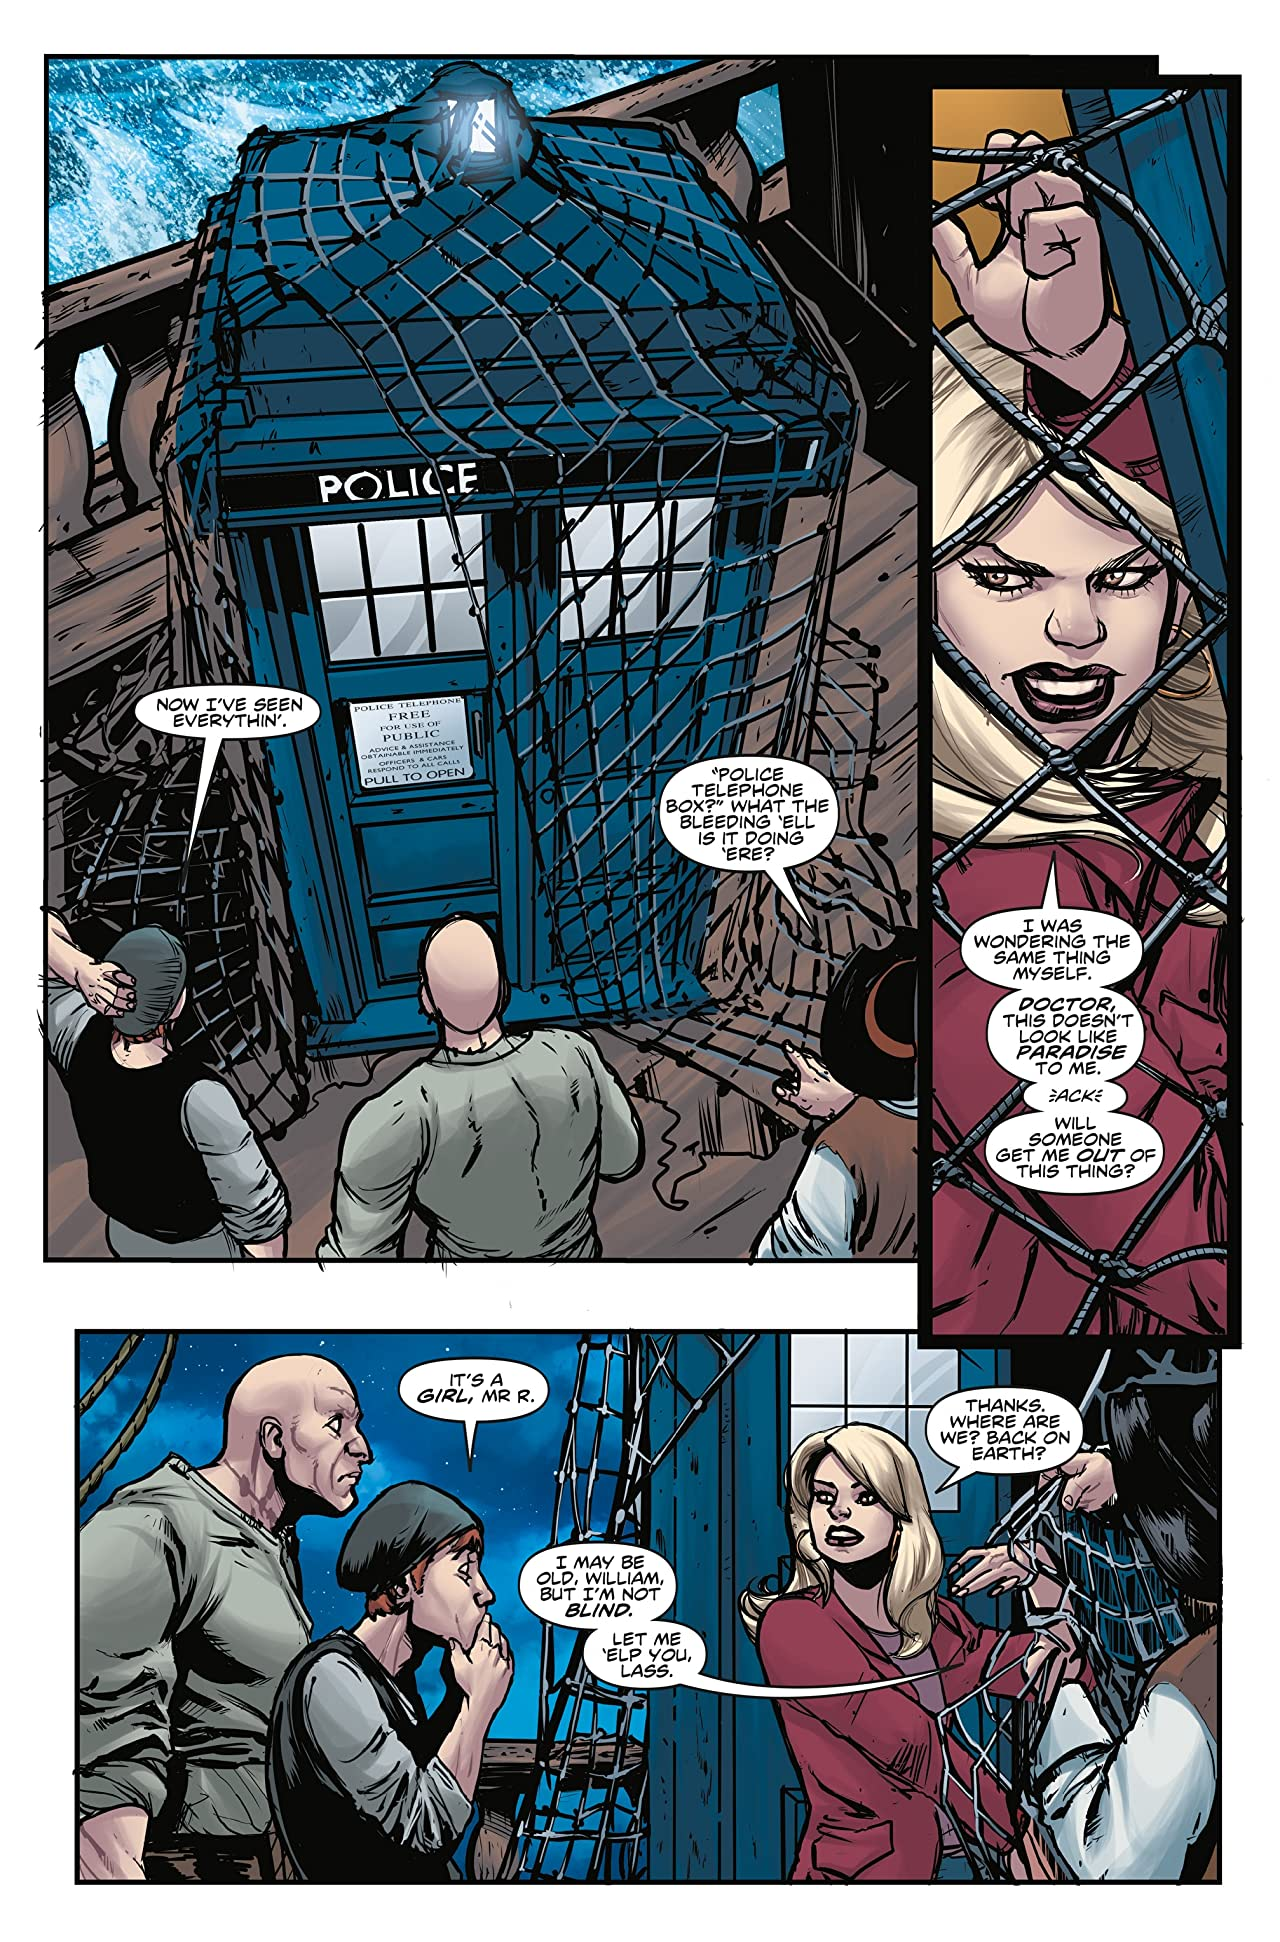 Doctor Who: The Lost Dimension #2: The Ninth Doctor Special